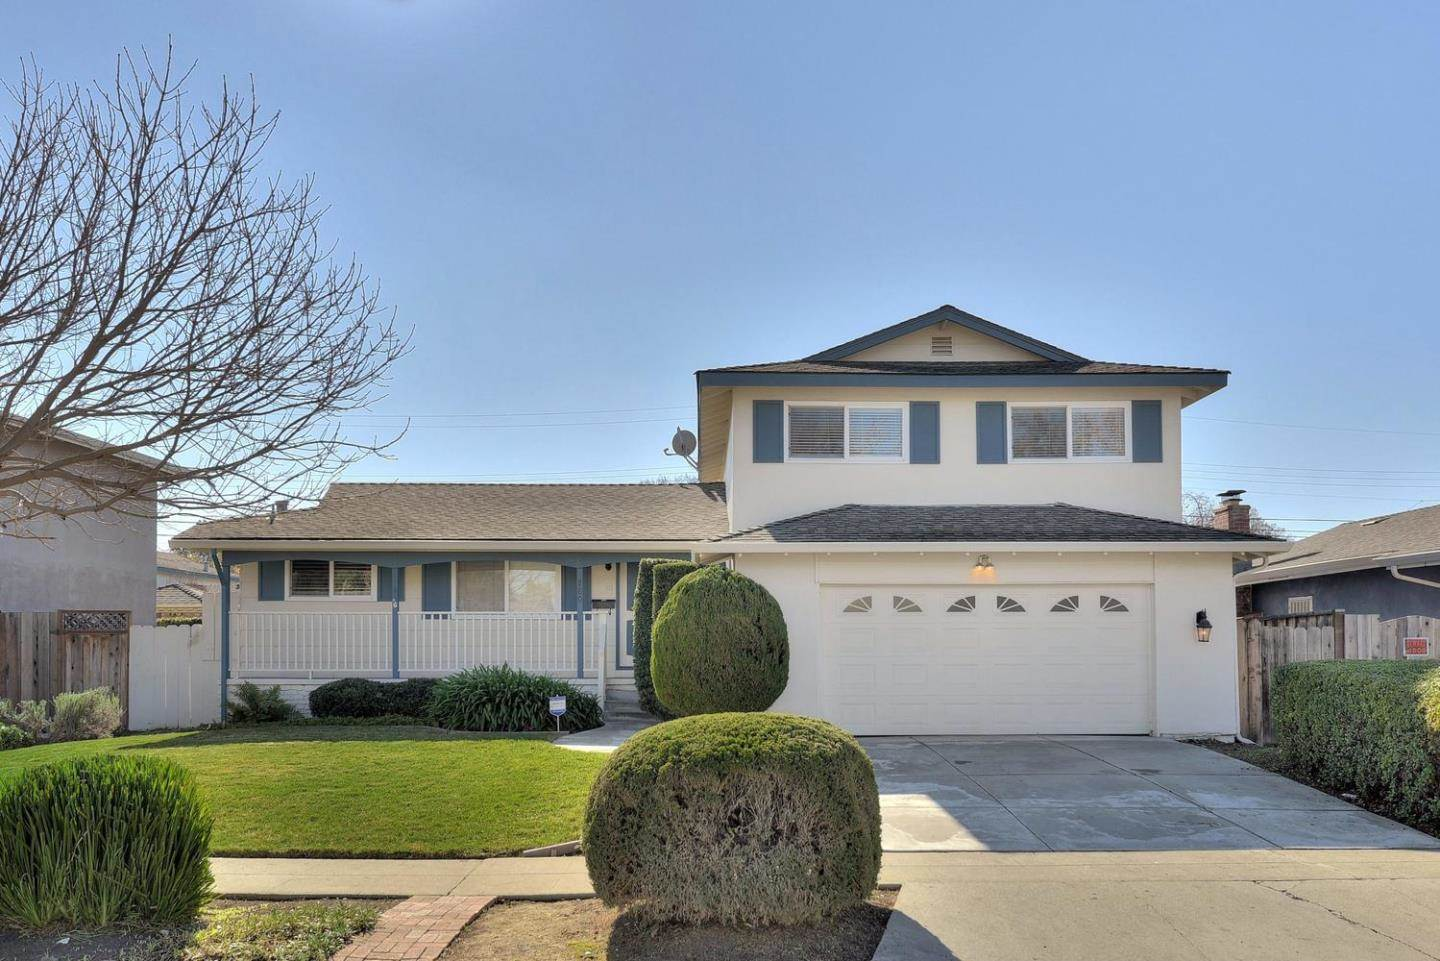 760 El Sombroso DR, one of homes for sale in Edenvale-San Jose